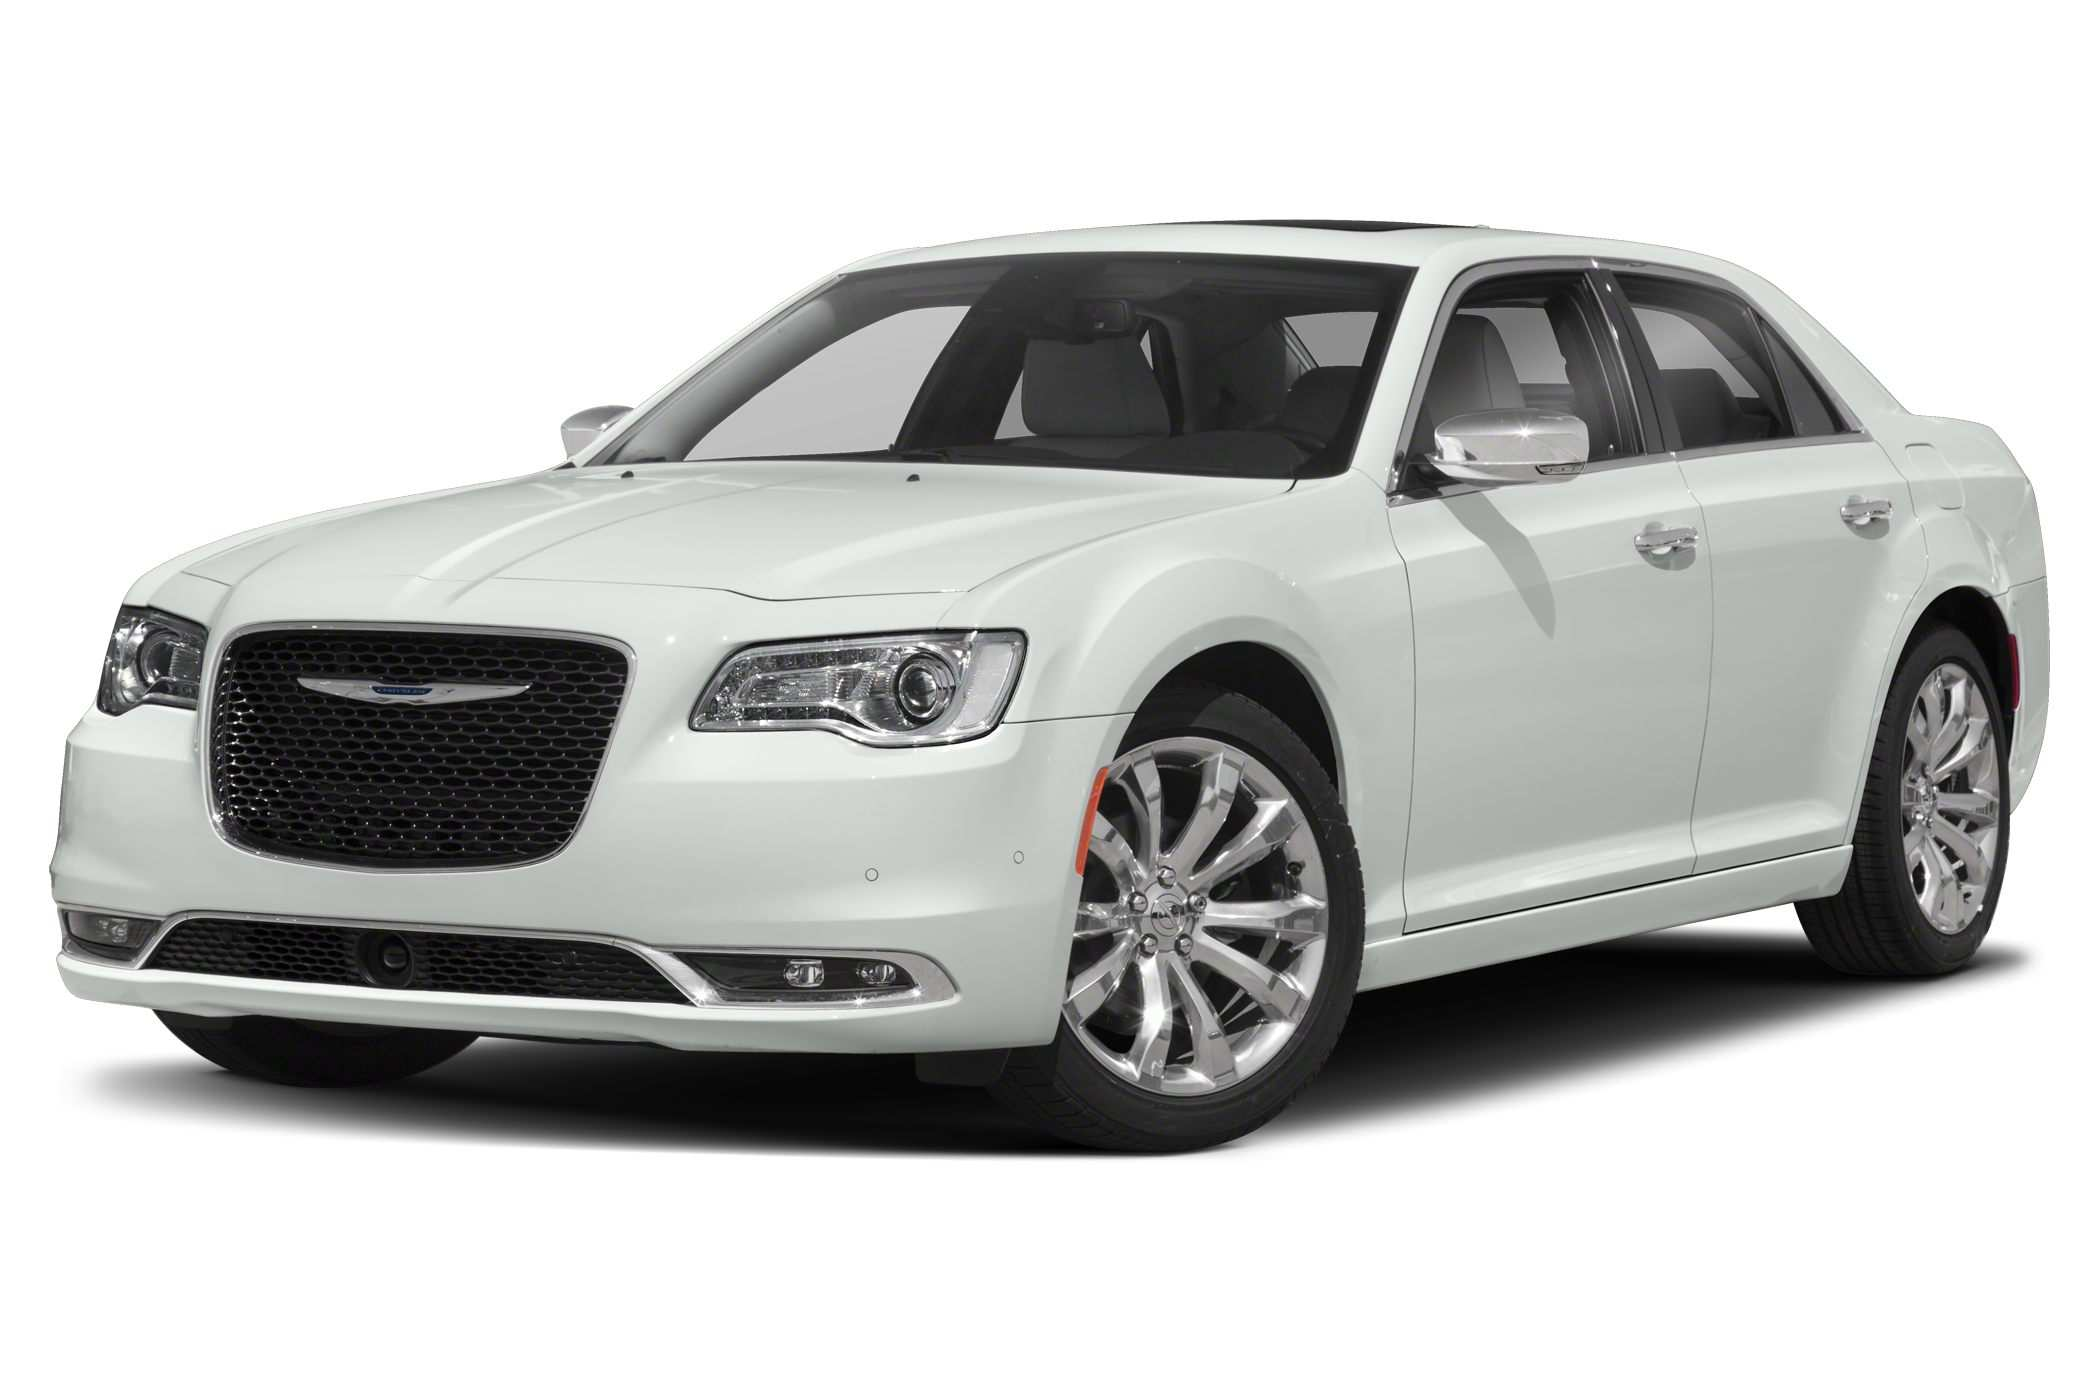 66 Great 2019 Chrysler 300 Review Redesign and Concept by 2019 Chrysler 300 Review